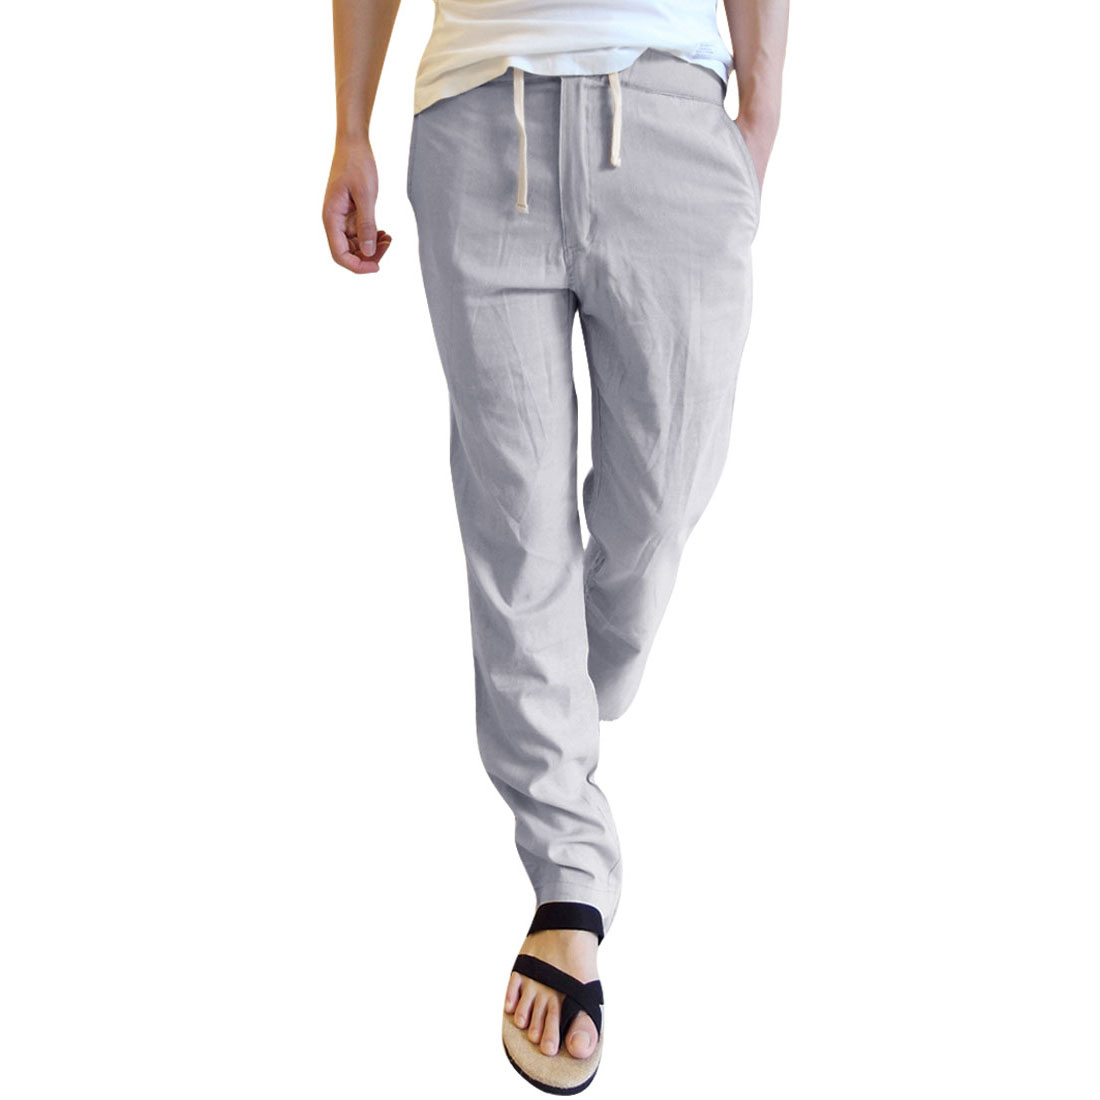 Men Zip Closure Hip Pocket Leisure Pants Light Gray W29